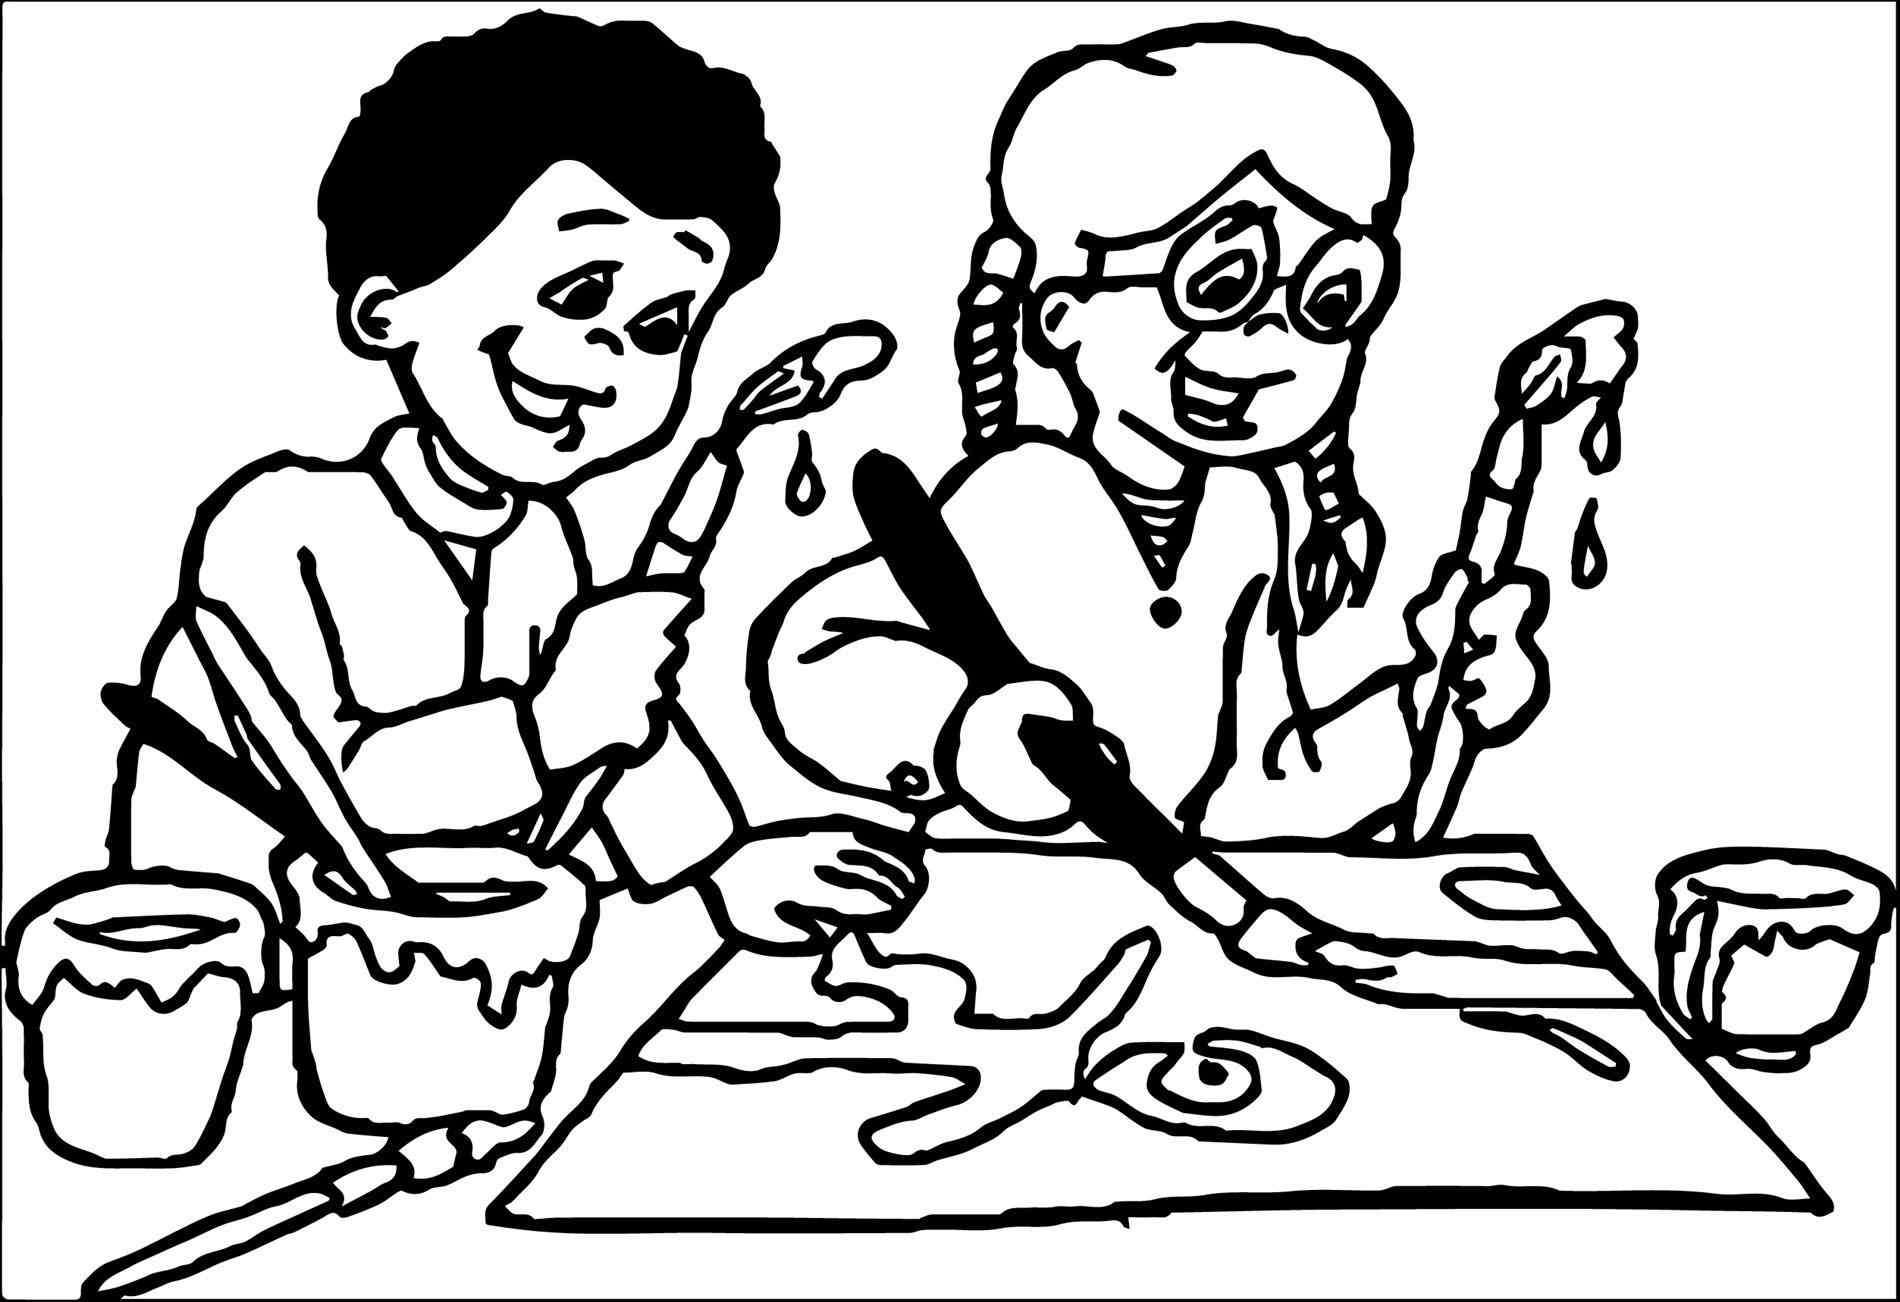 1951 Events free clipart.